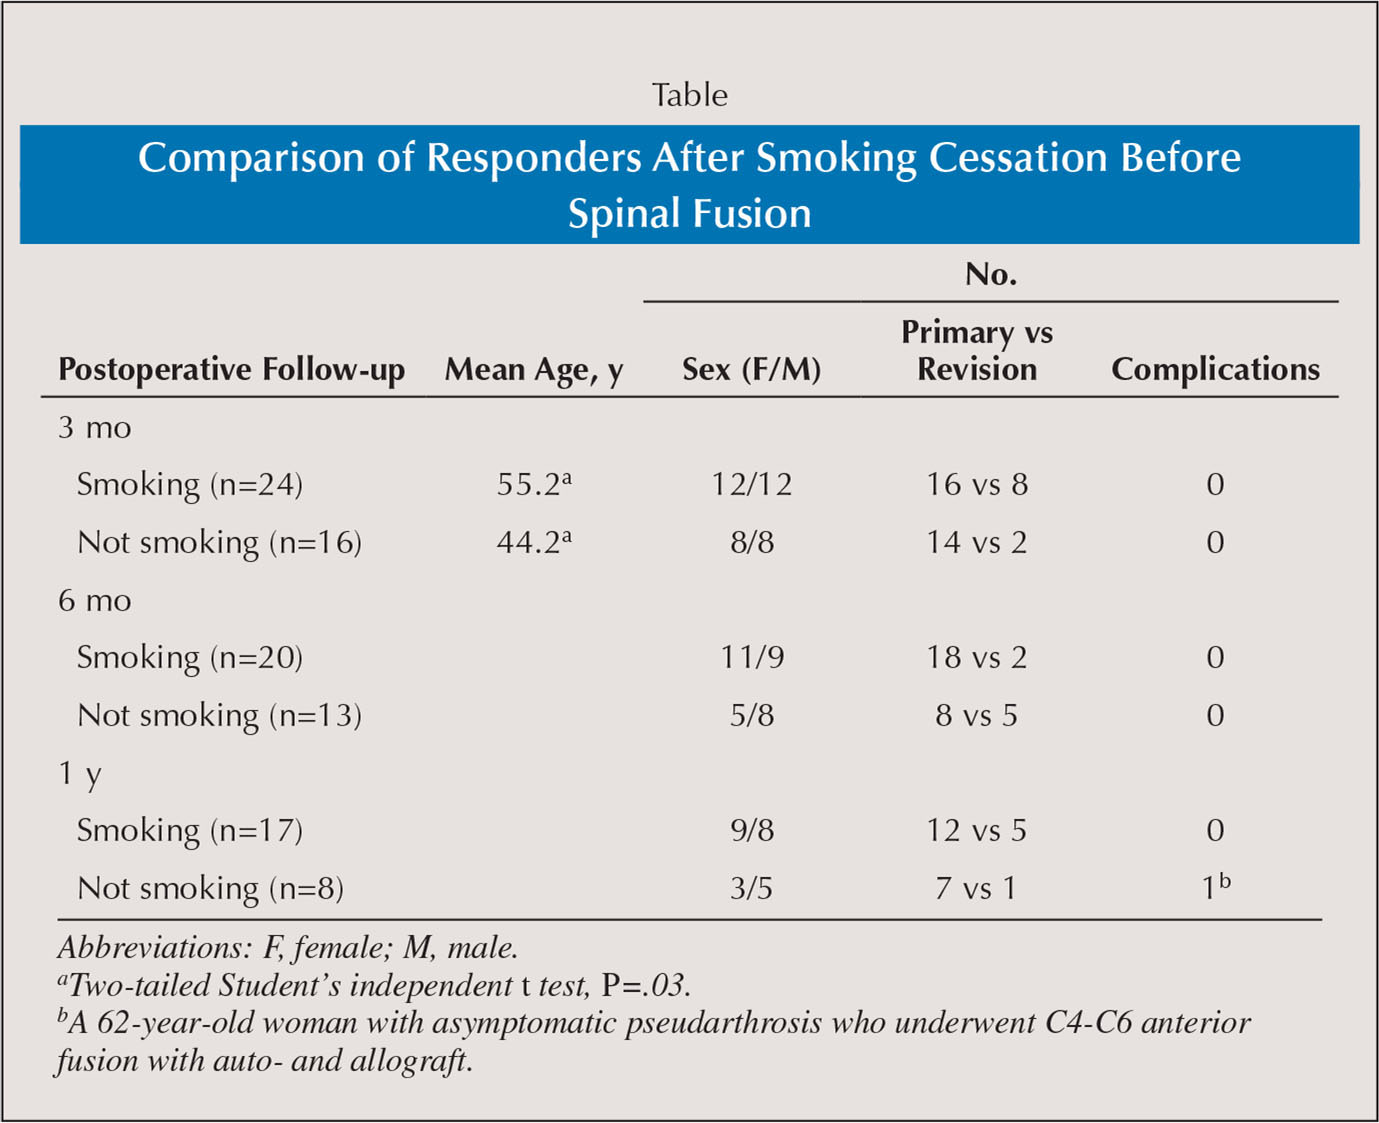 Comparison of Responders After Smoking Cessation Before Spinal Fusion